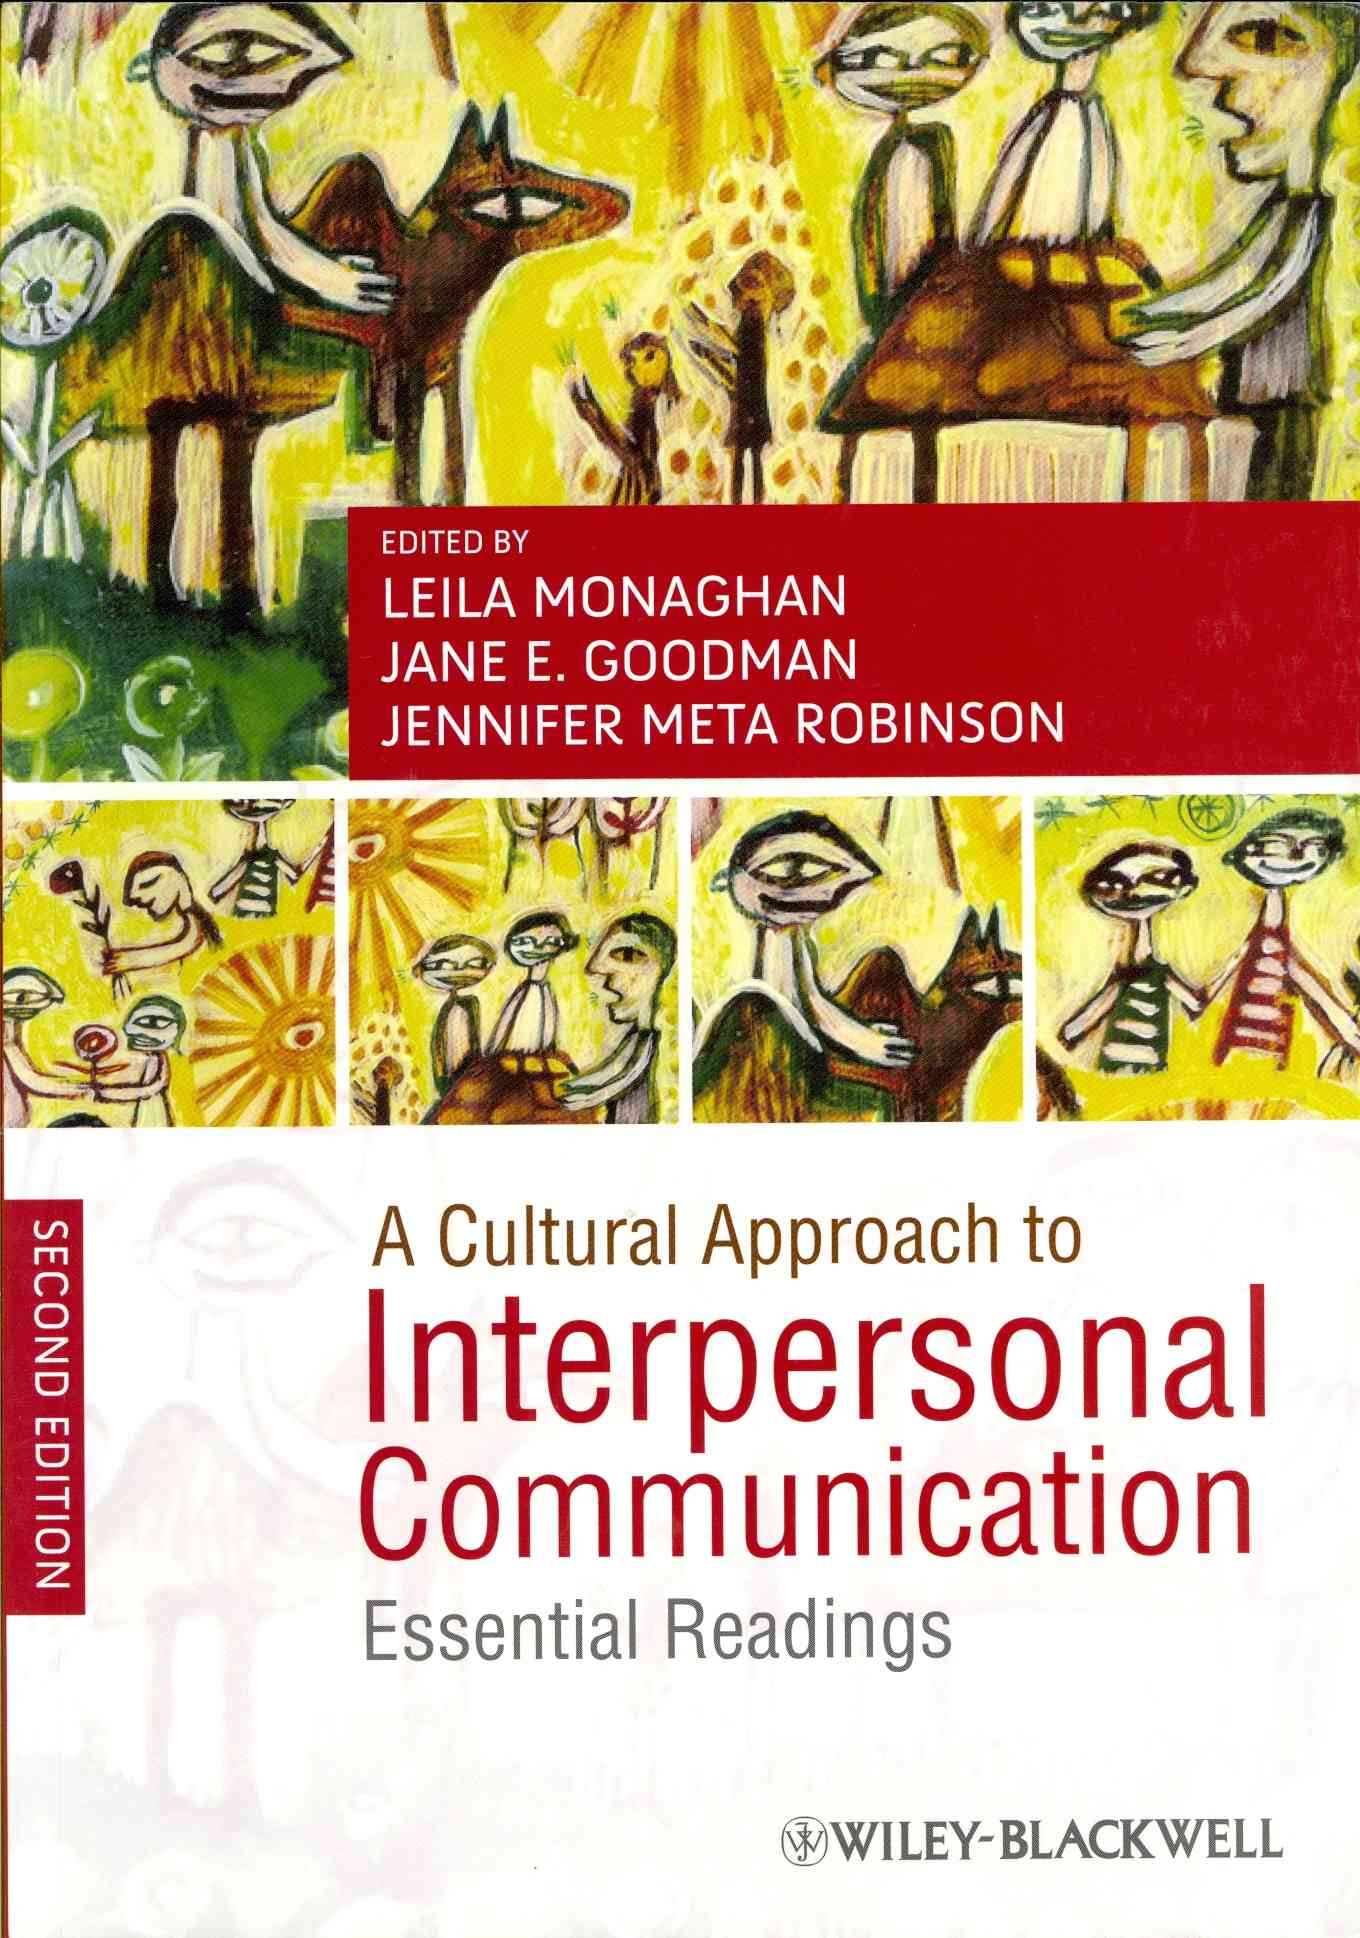 A Cultural Approach to Interpersonal Communication By Monaghan, Leila (EDT)/ Goodman, Jane E. (EDT)/ Robinson, Jennifer Meta (EDT)